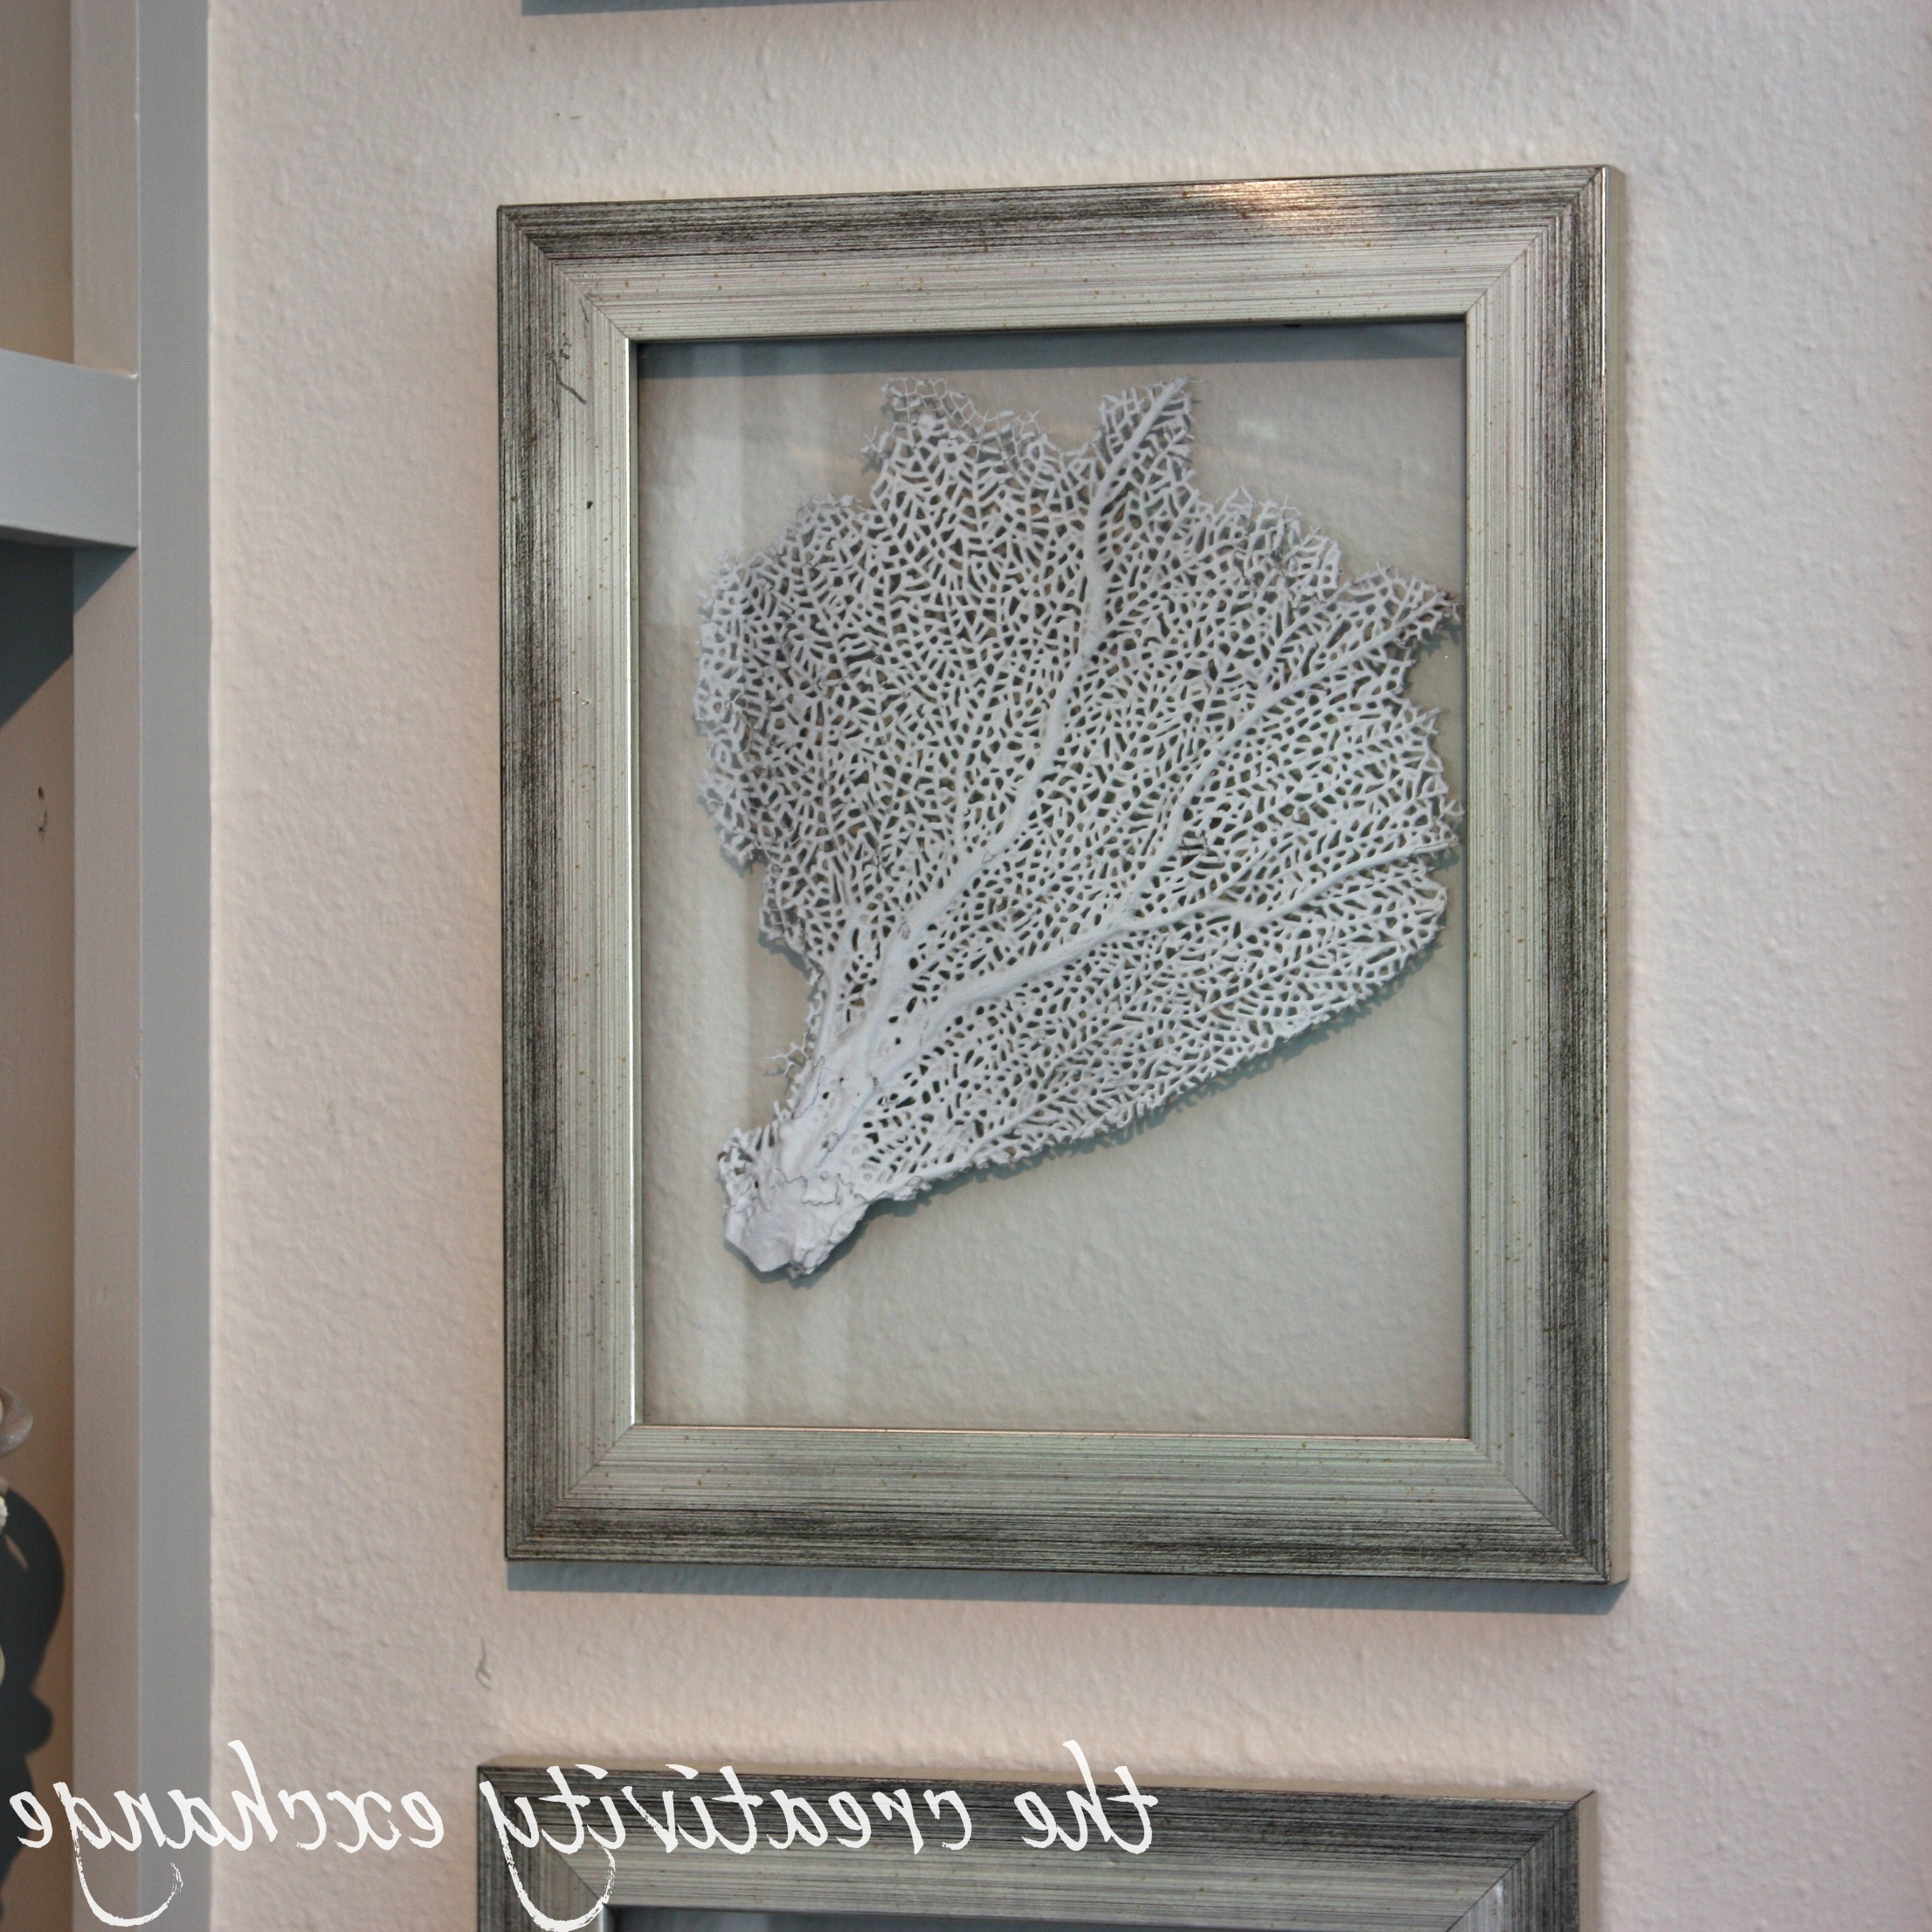 Famous Diy Double Sided Glass Frames For Framing Shells Or Dyed Sea Fans Pertaining To Sea Fan Wall Art (View 9 of 15)